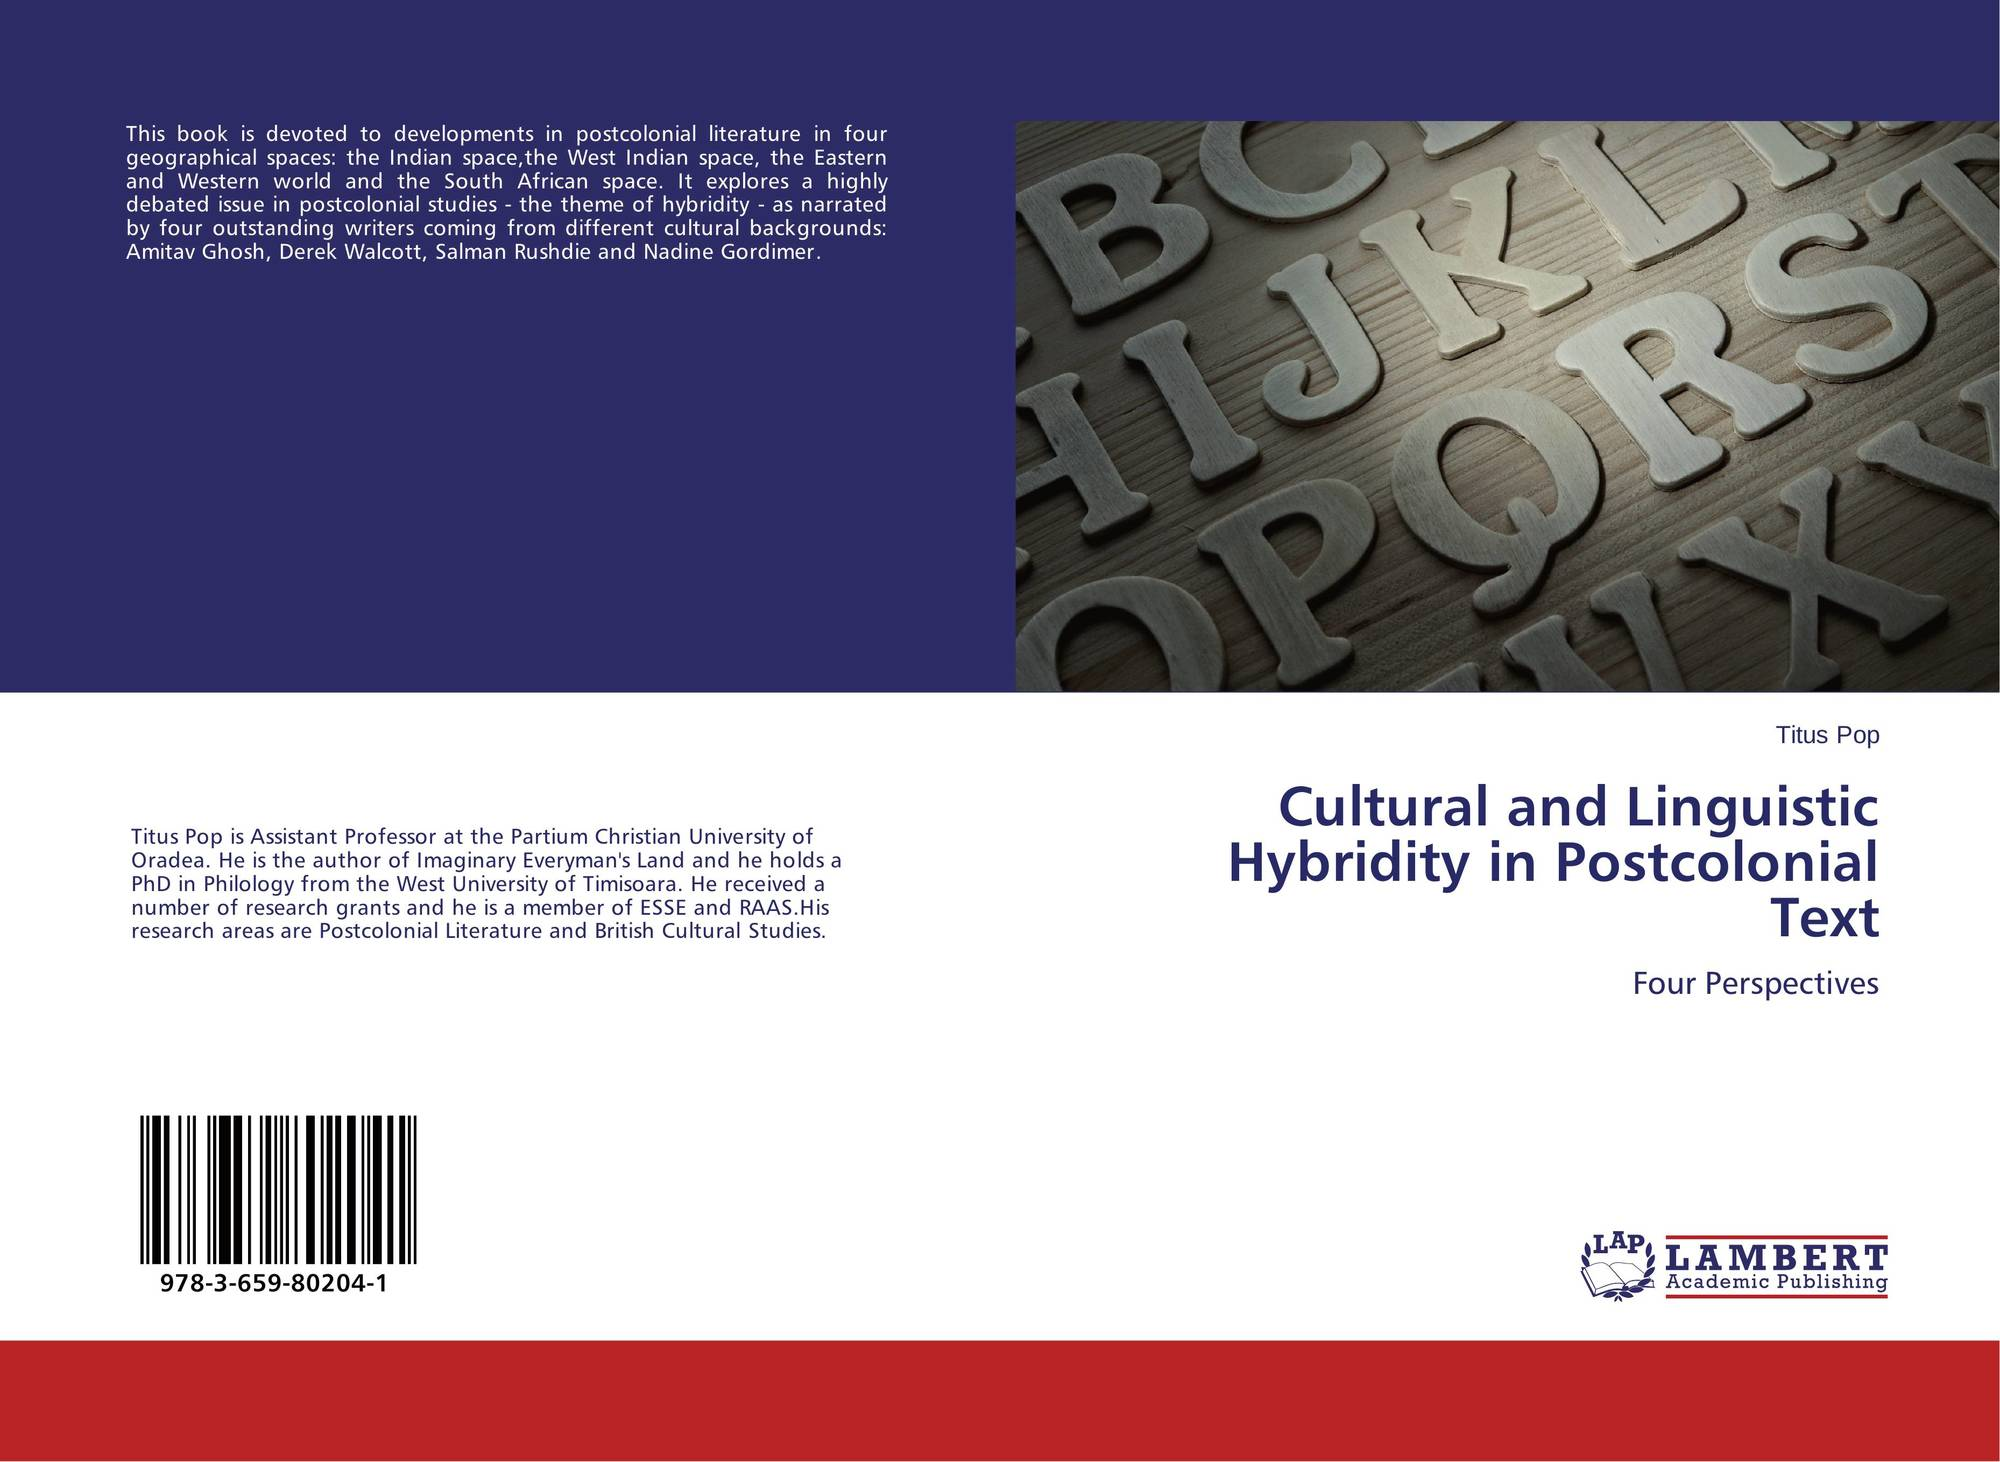 """the effects of post colonialism and hybridity The lie of imperialism exposed in literature - if postcolonial literature is the """"process of dialogue and necessary correction,"""" of misconceptions concerning colonialism, then a comparative study of colonial and postcolonial works is essential for attaining a full understanding of the far-reaching effects of european imperialism (groden and."""